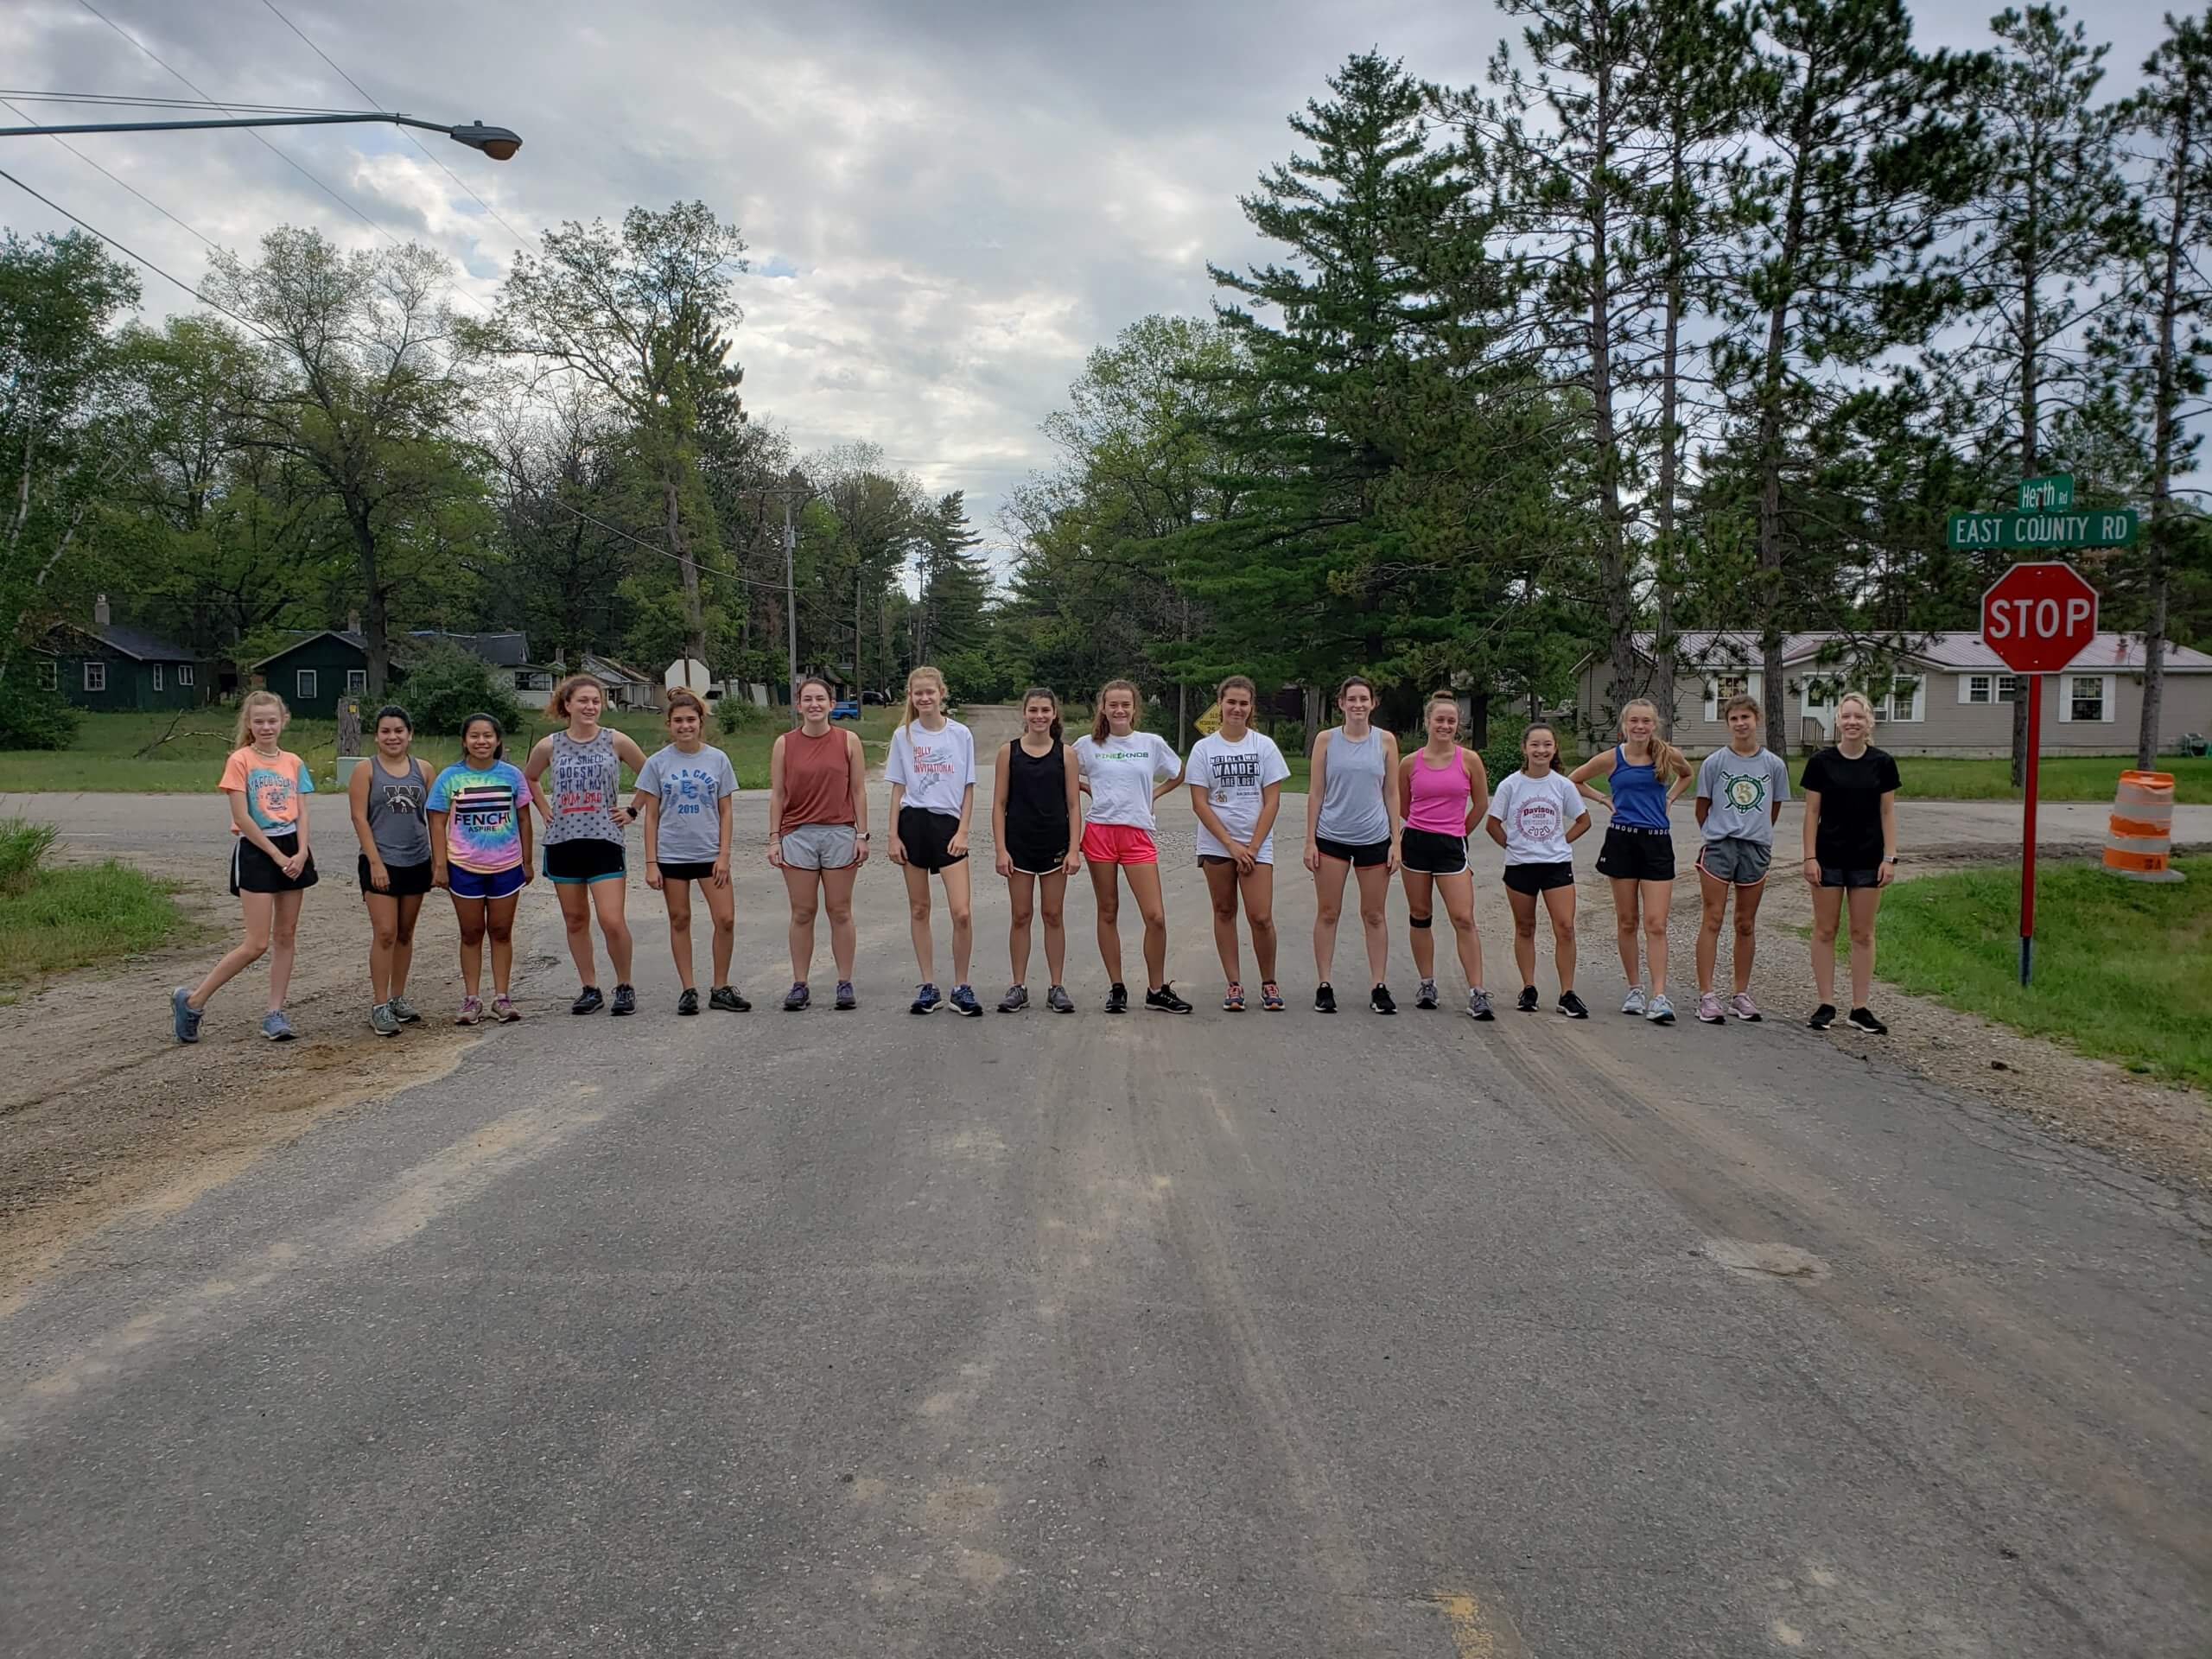 Cross country runners at road